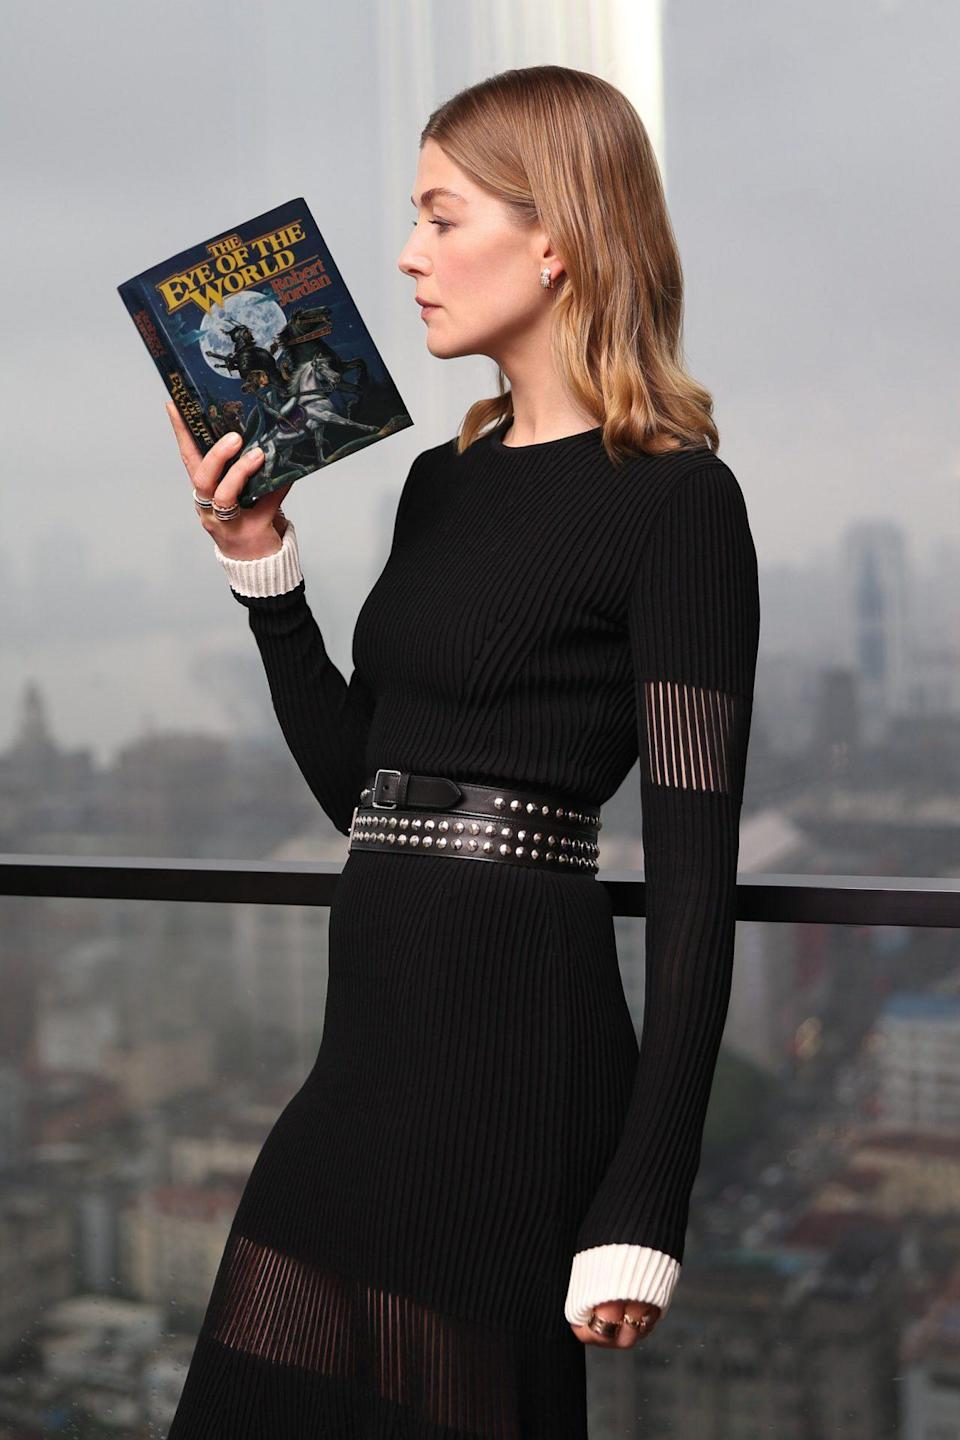 Rosamund Pike holds The Eye of the World